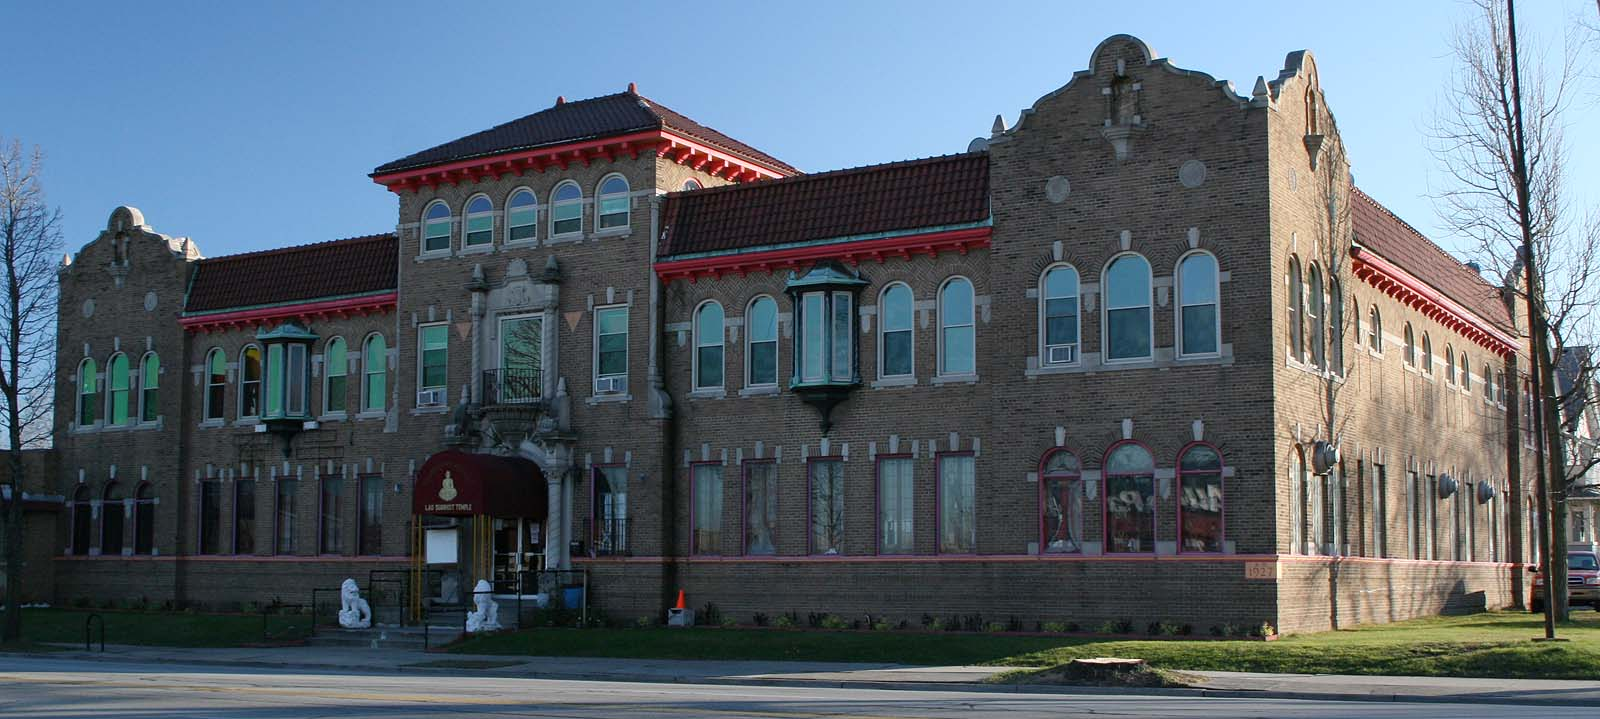 The Lao Buddhist Temple on National Avenue practices Theravada Buddhism and is operated by members of the Laotian community. The building in which it is located was constructed for a fraternal order in 1927 and is listed on the National Register of Historic Places.